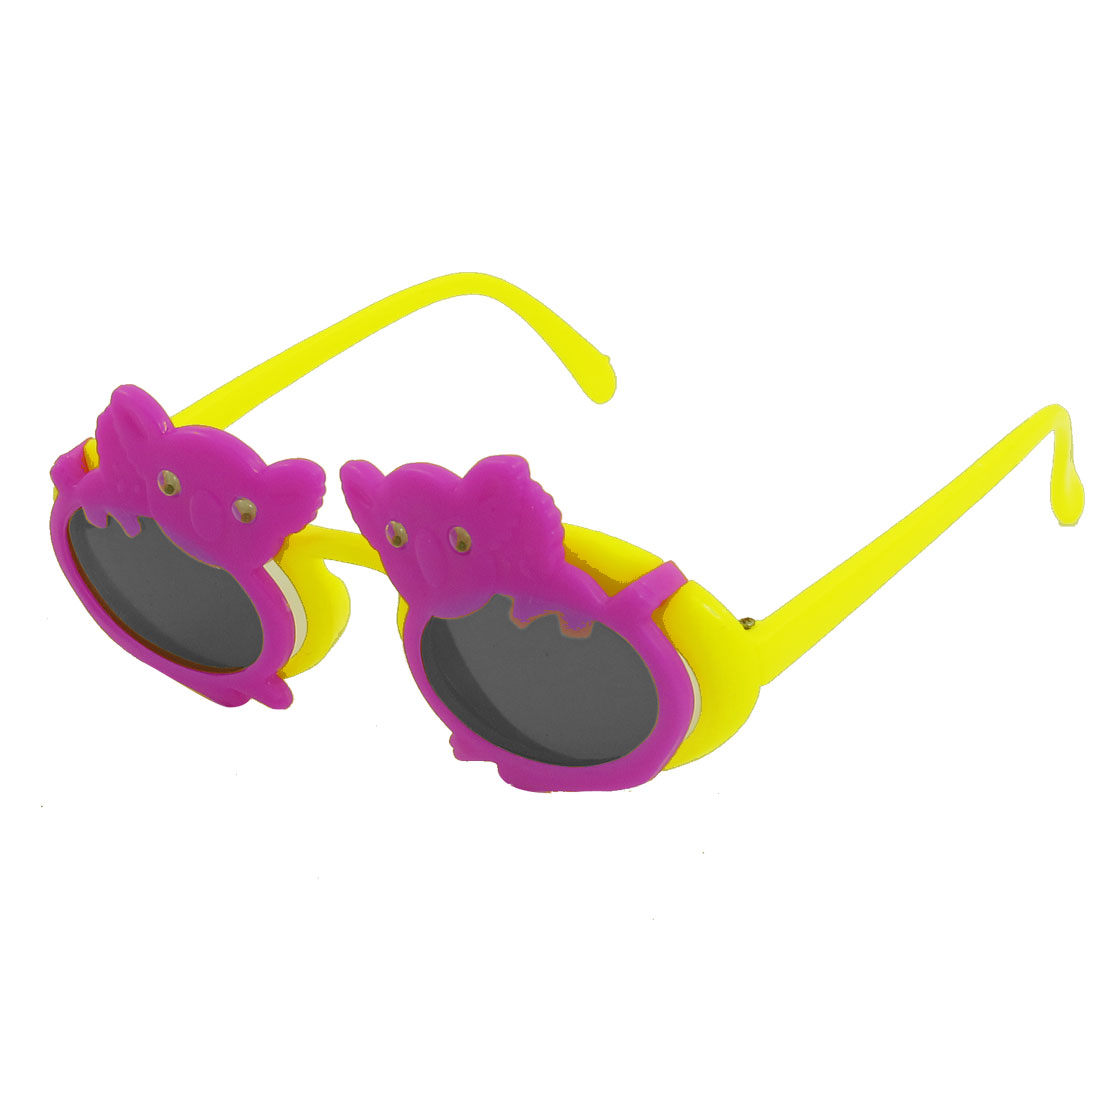 Koala Design Full Rim Yellow Arms 2 Layers Plastic Sunglasses for Kids